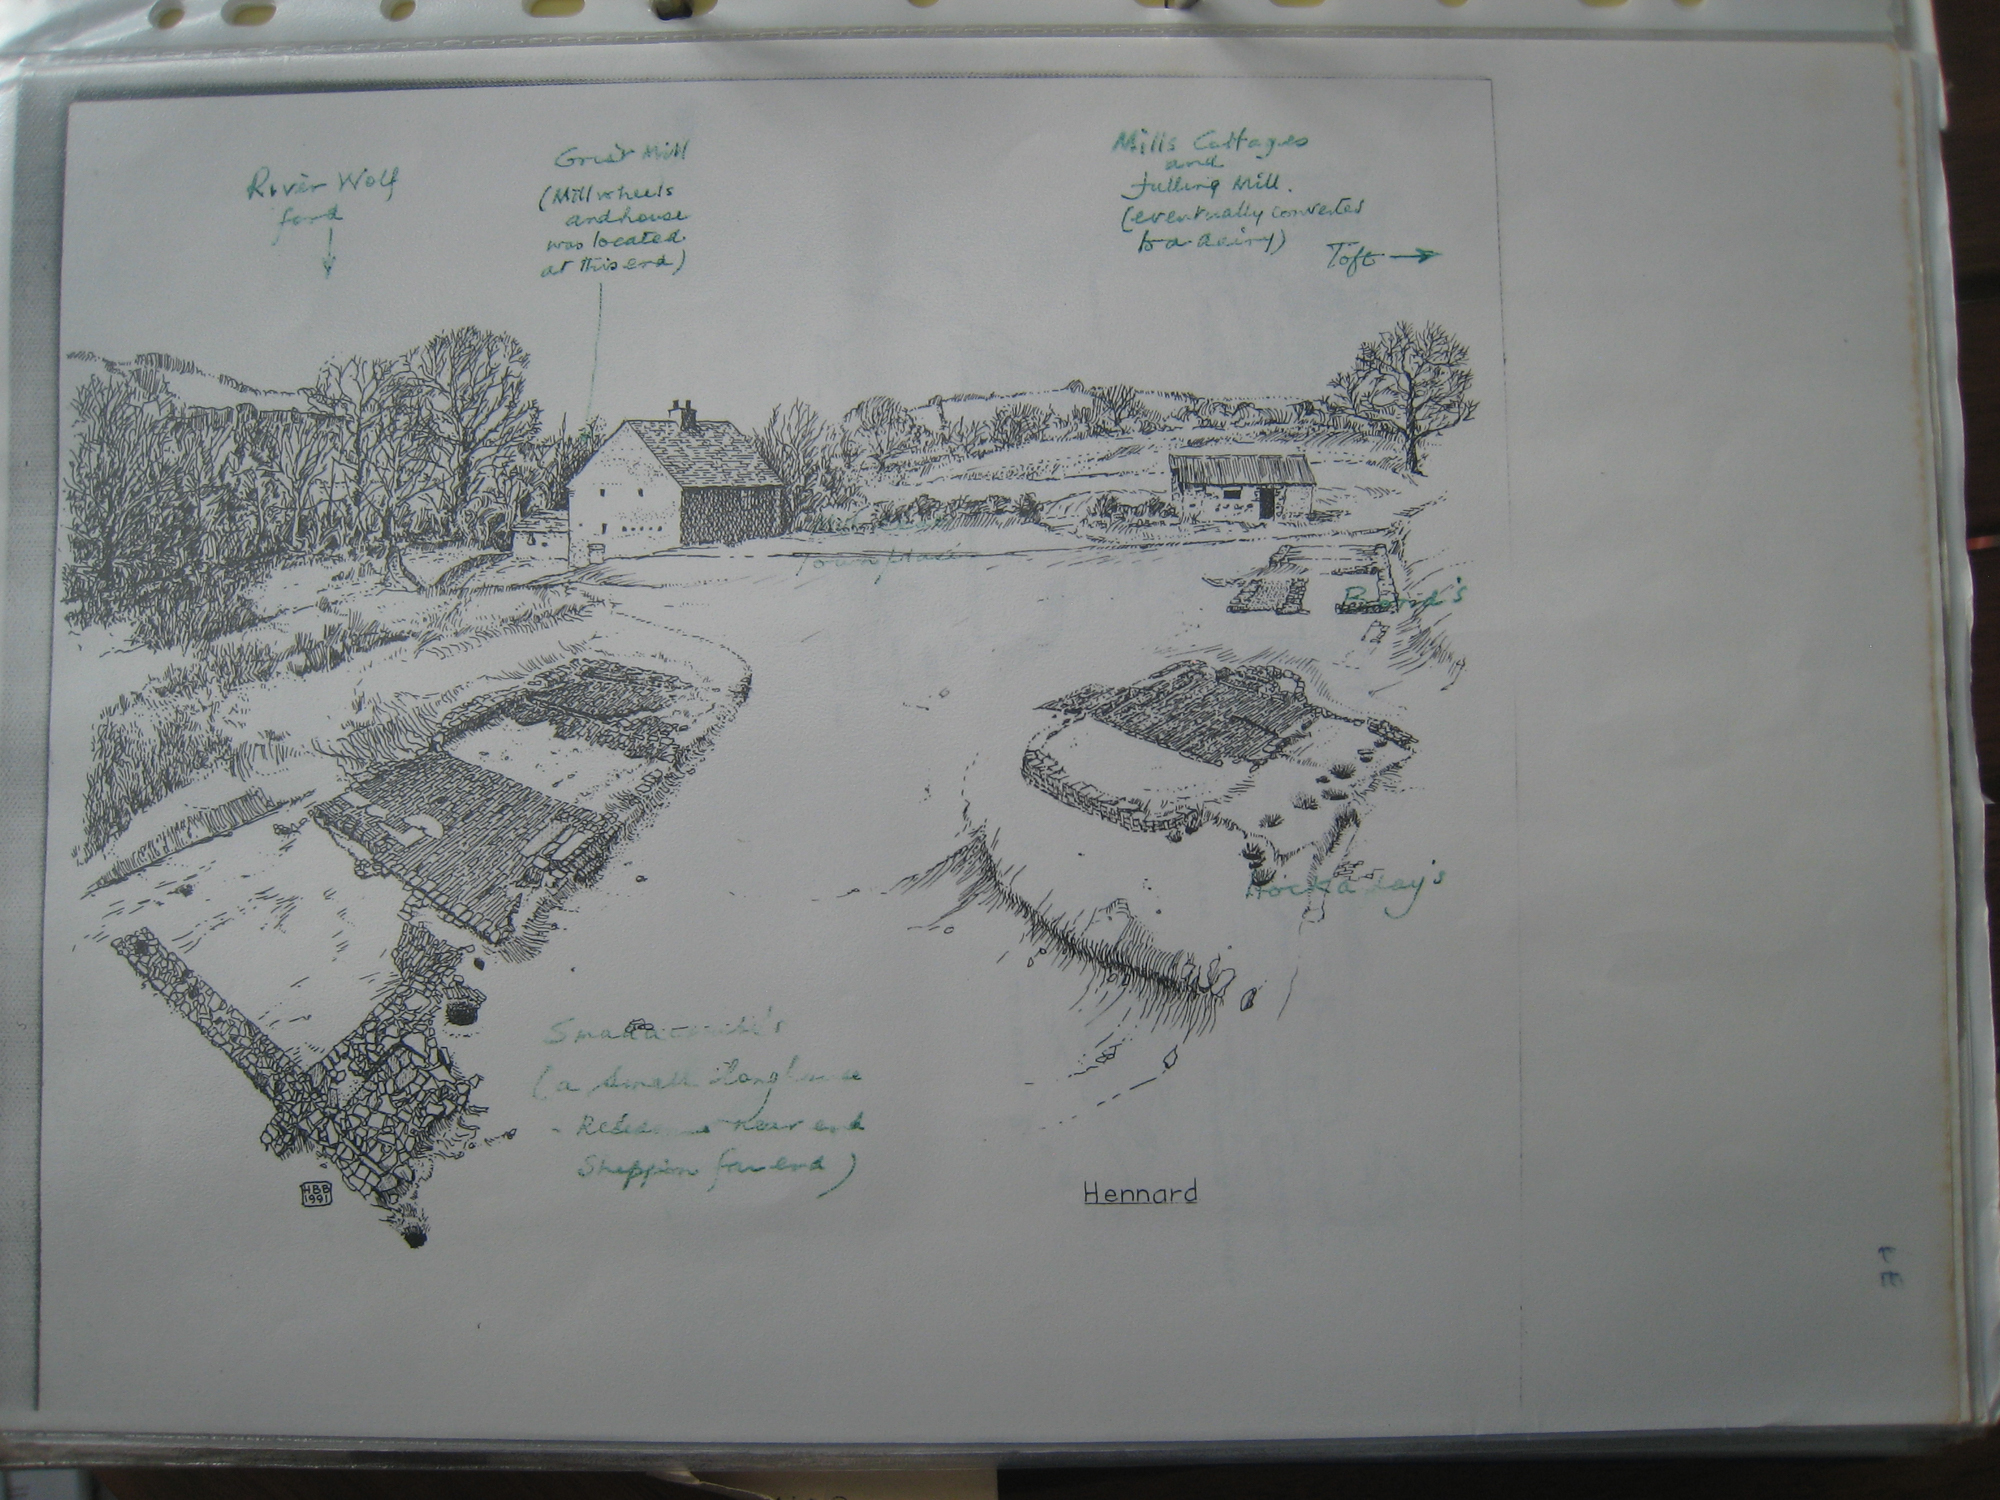 A second drawing of Hennard Mill develops: comments on first draft 1